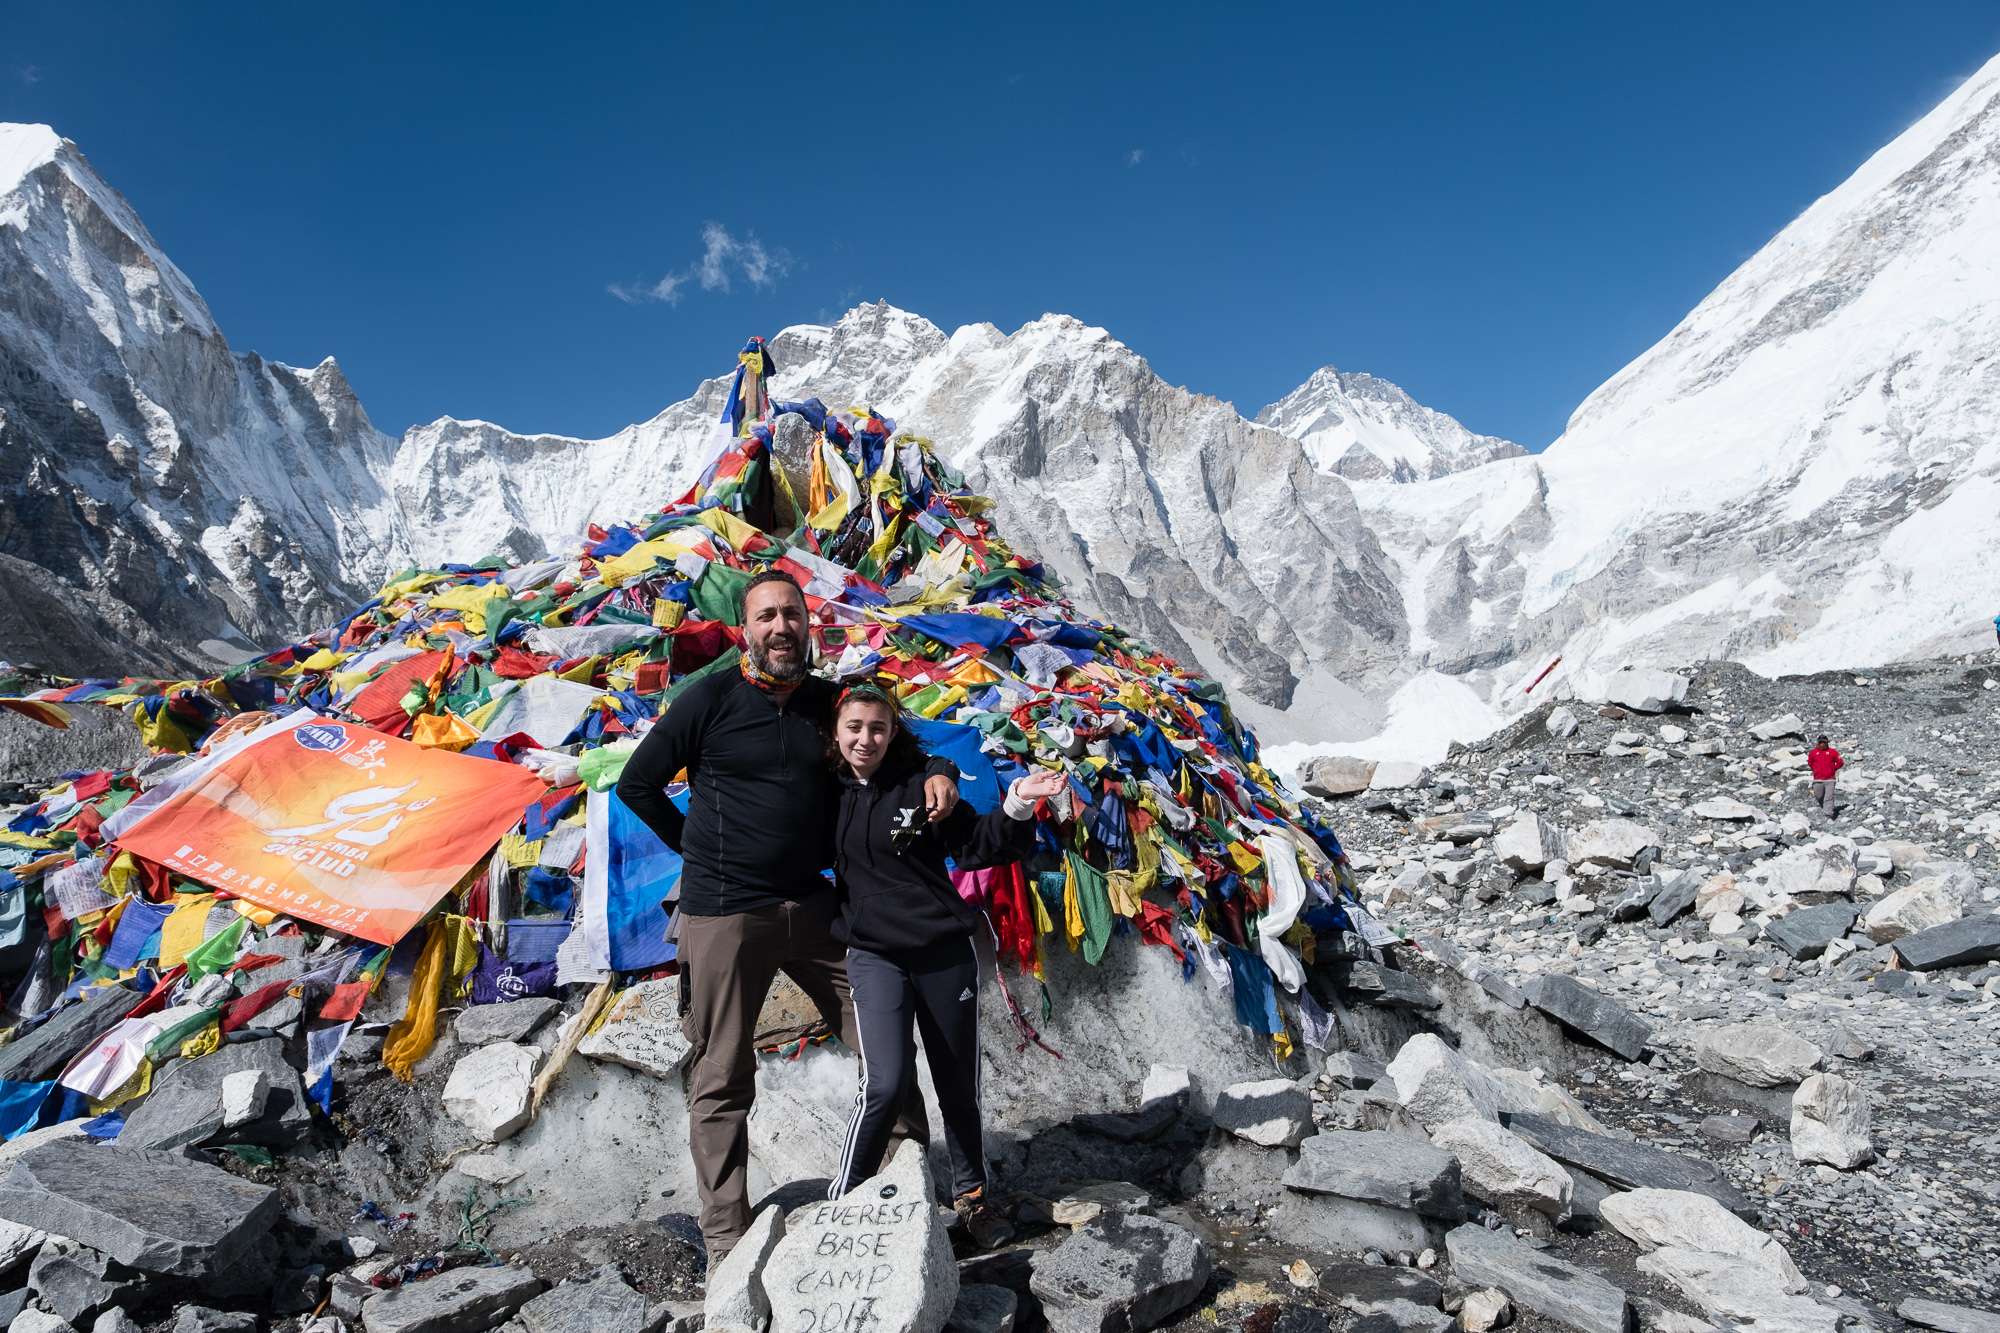 Went with my 15 year old daughter to Everest Base Camp. One of my proudest moments.